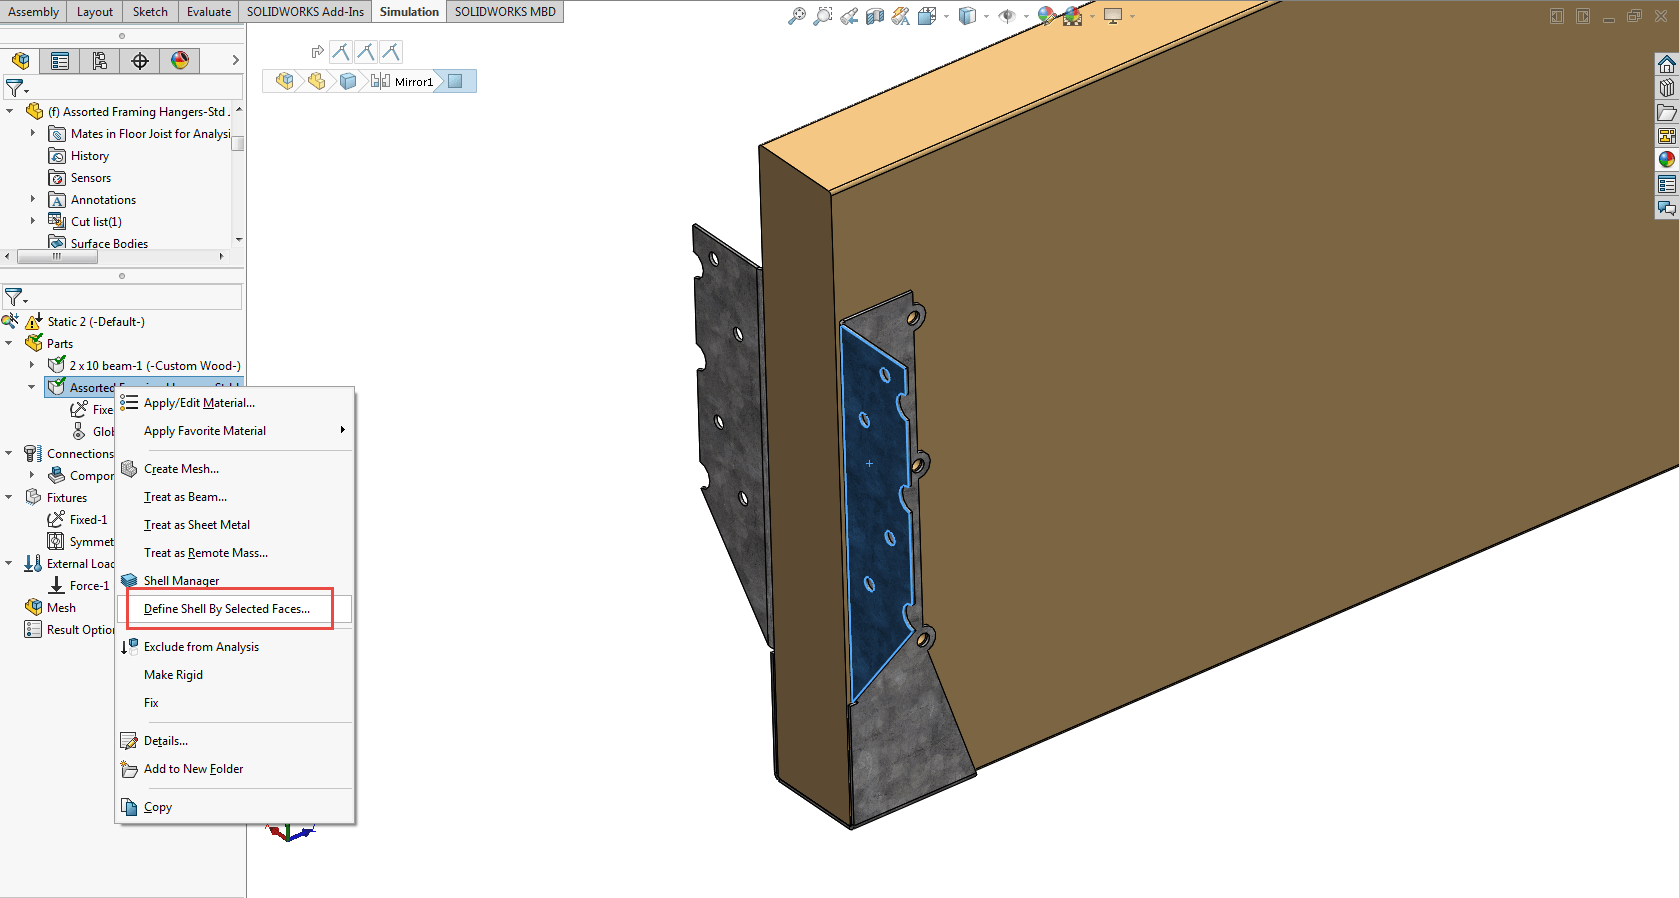 solidworks simulation define shell